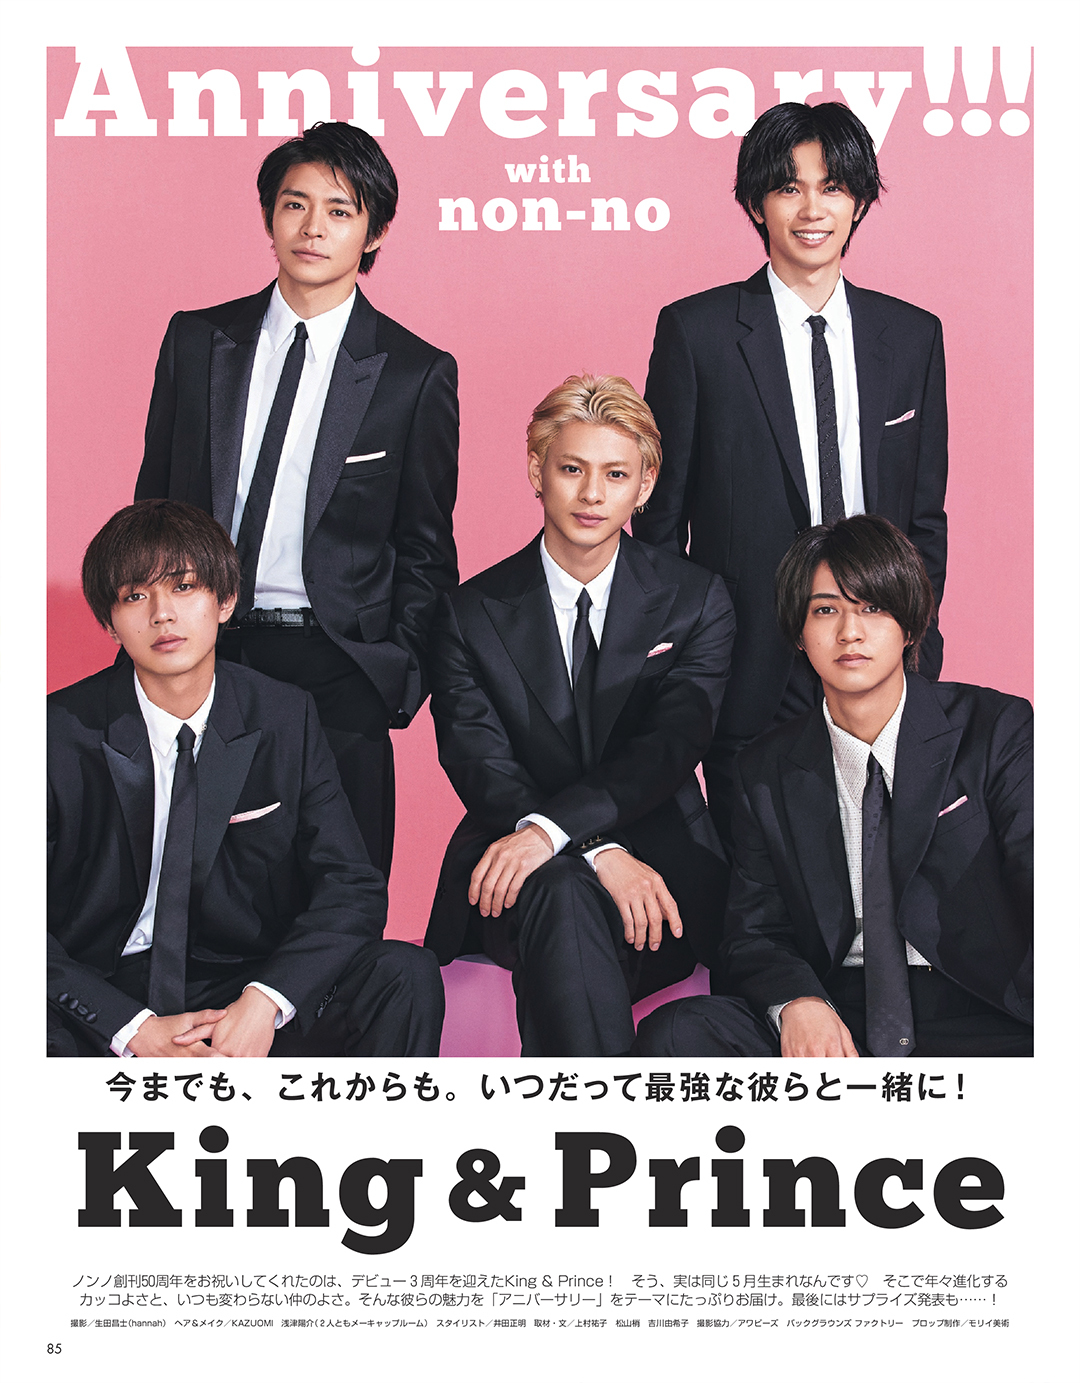 King & Prince Anniversary with non-no